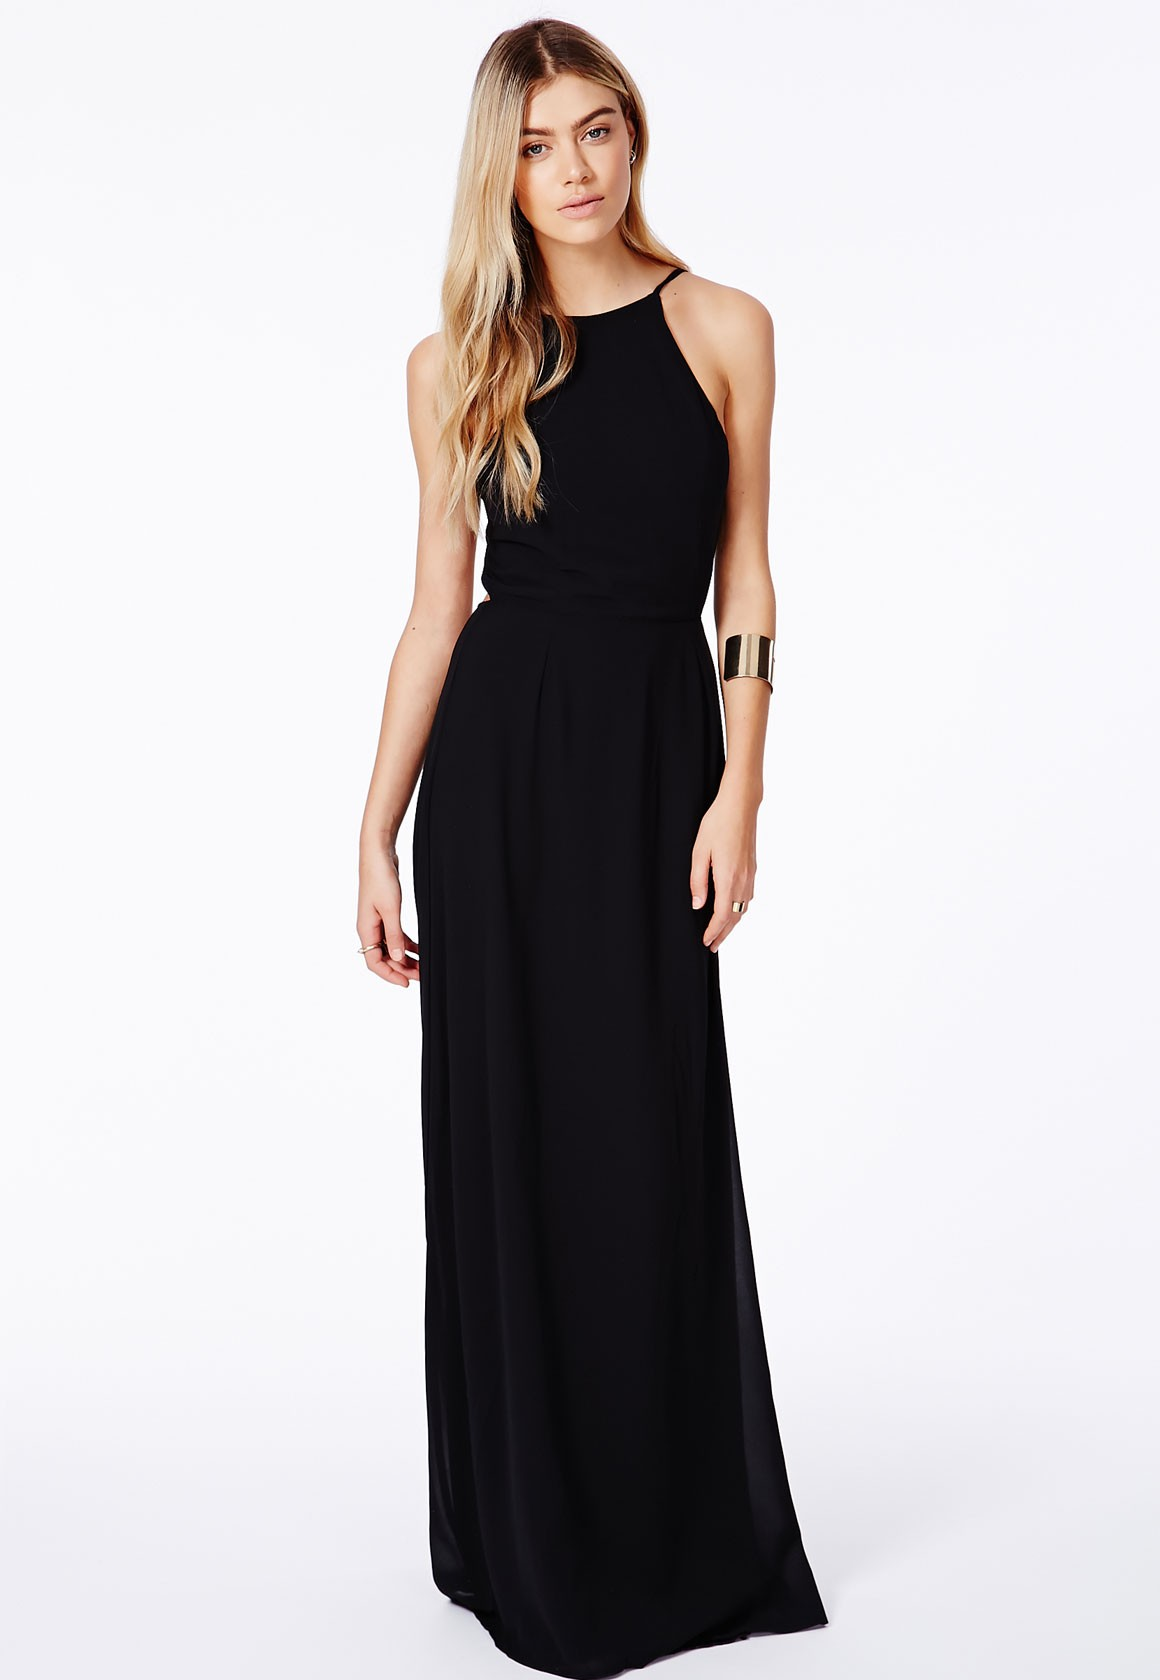 Long, flowy and sexy, bebe's maxi dresses are flattering and fashionable. Go to great lengths and make a statement in a variety of sexy maxi dresses, including floral, embellished, flowy dresses and other long dress styles. halter, strapless and backless styles. Go classic with a white or black maxi dress, or stand out in red, pink, yellow.